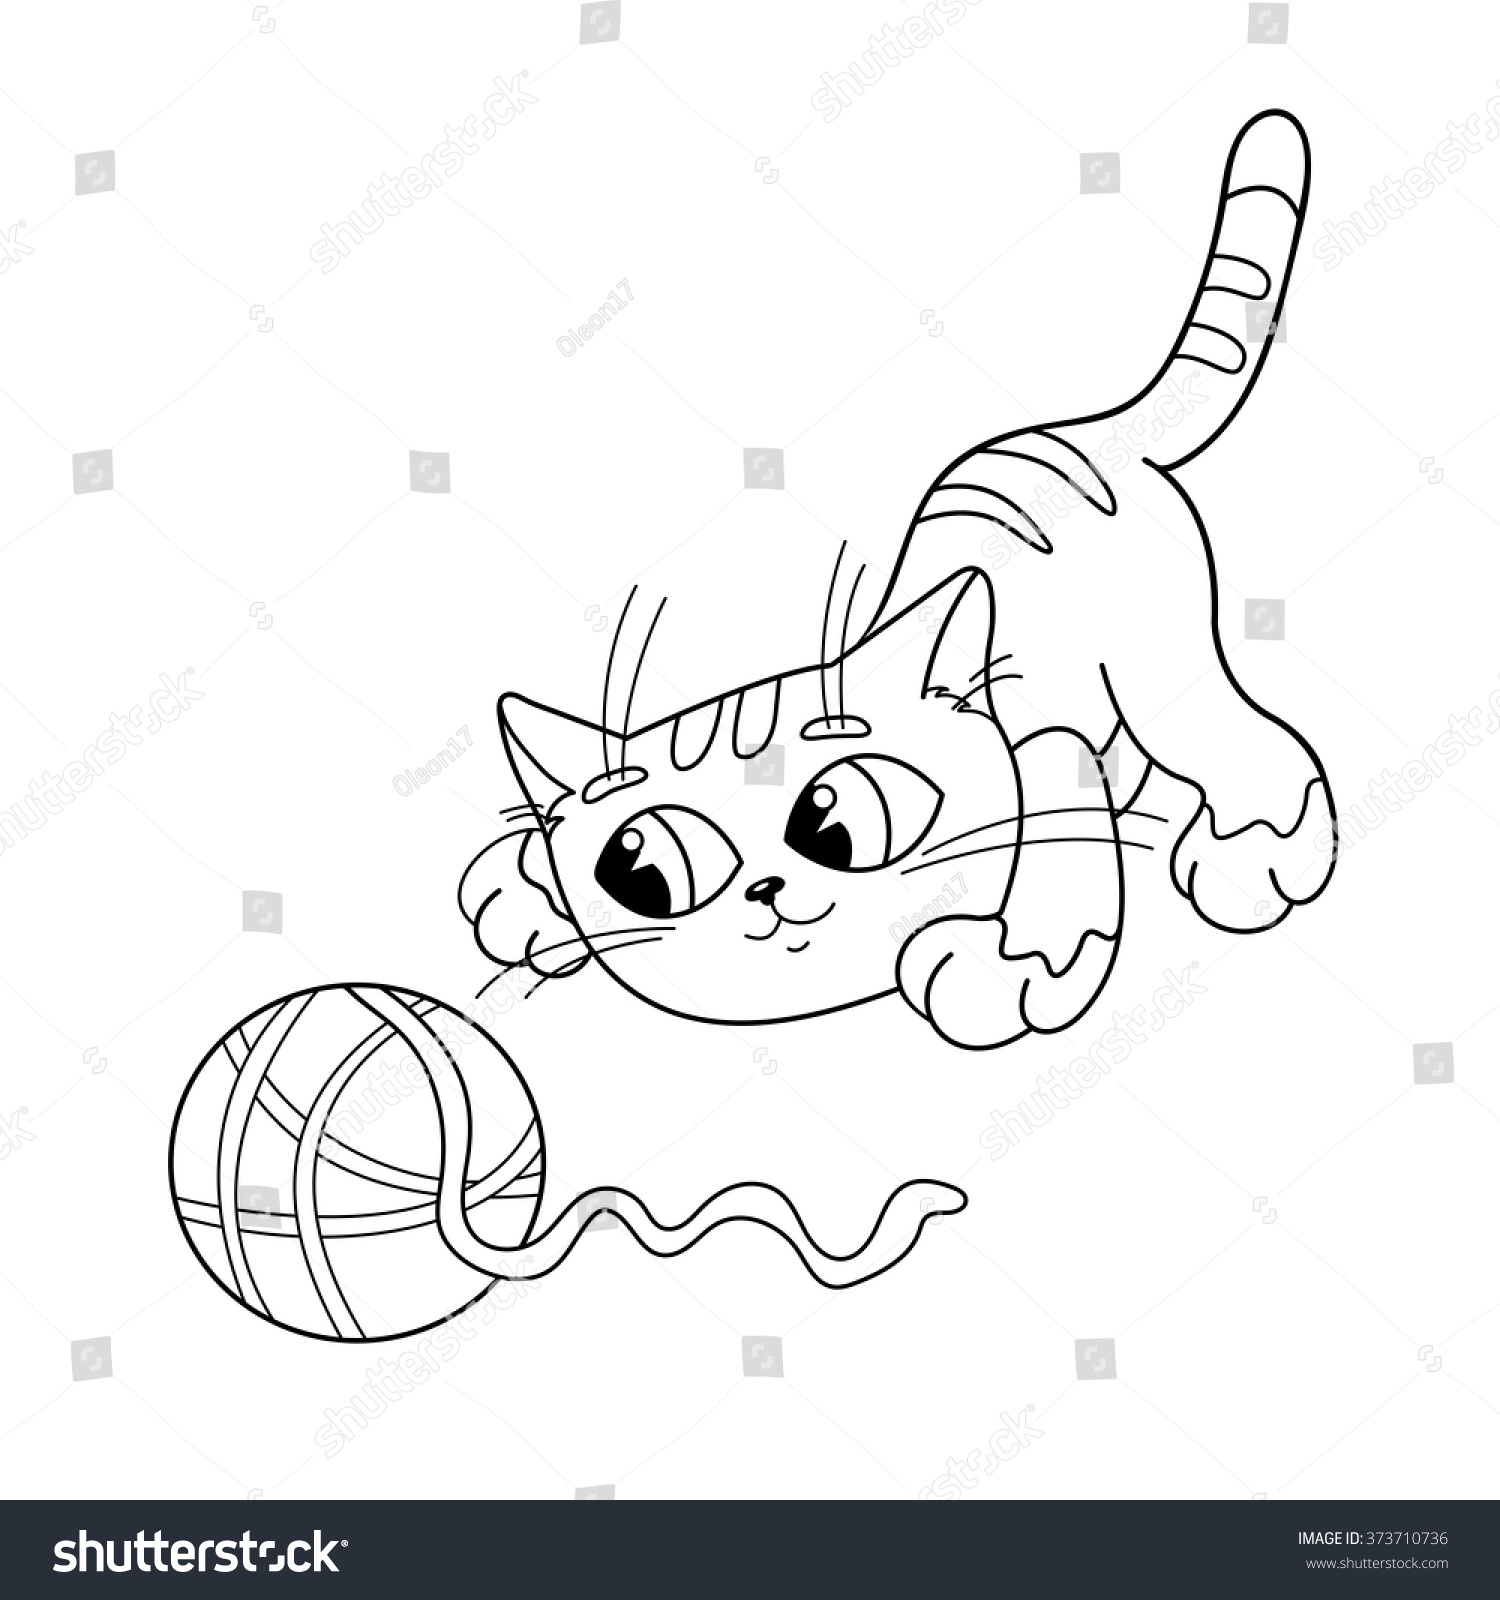 coloring page outline of a cartoon cat playing with ball of yarn coloring book for